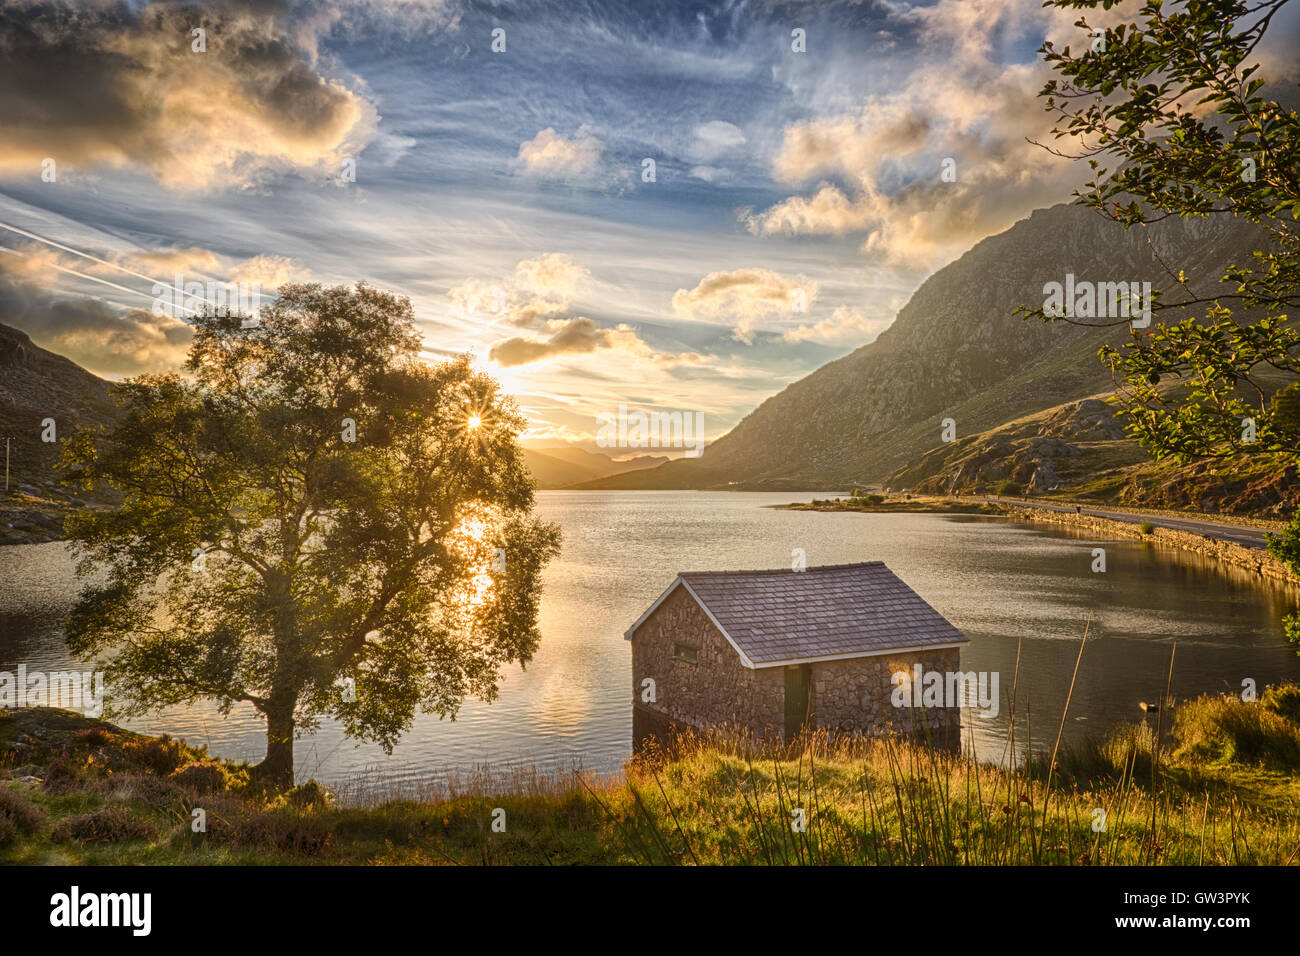 View of Llyn Ogwen Lake at sunrise with blu sky. House in the lake and tree. Stock Photo